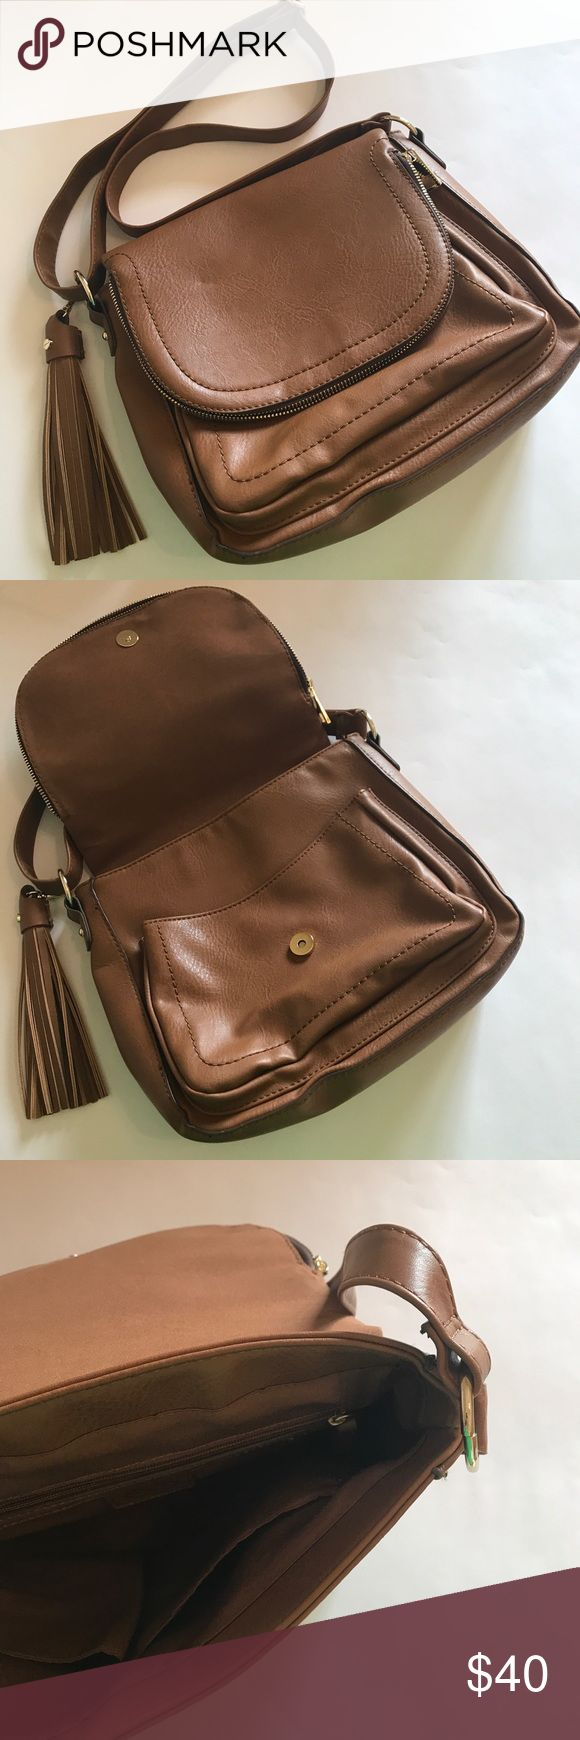 Target Purse (Used Once) Tan Target Purse (used once) Target Bags Crossbody Bags